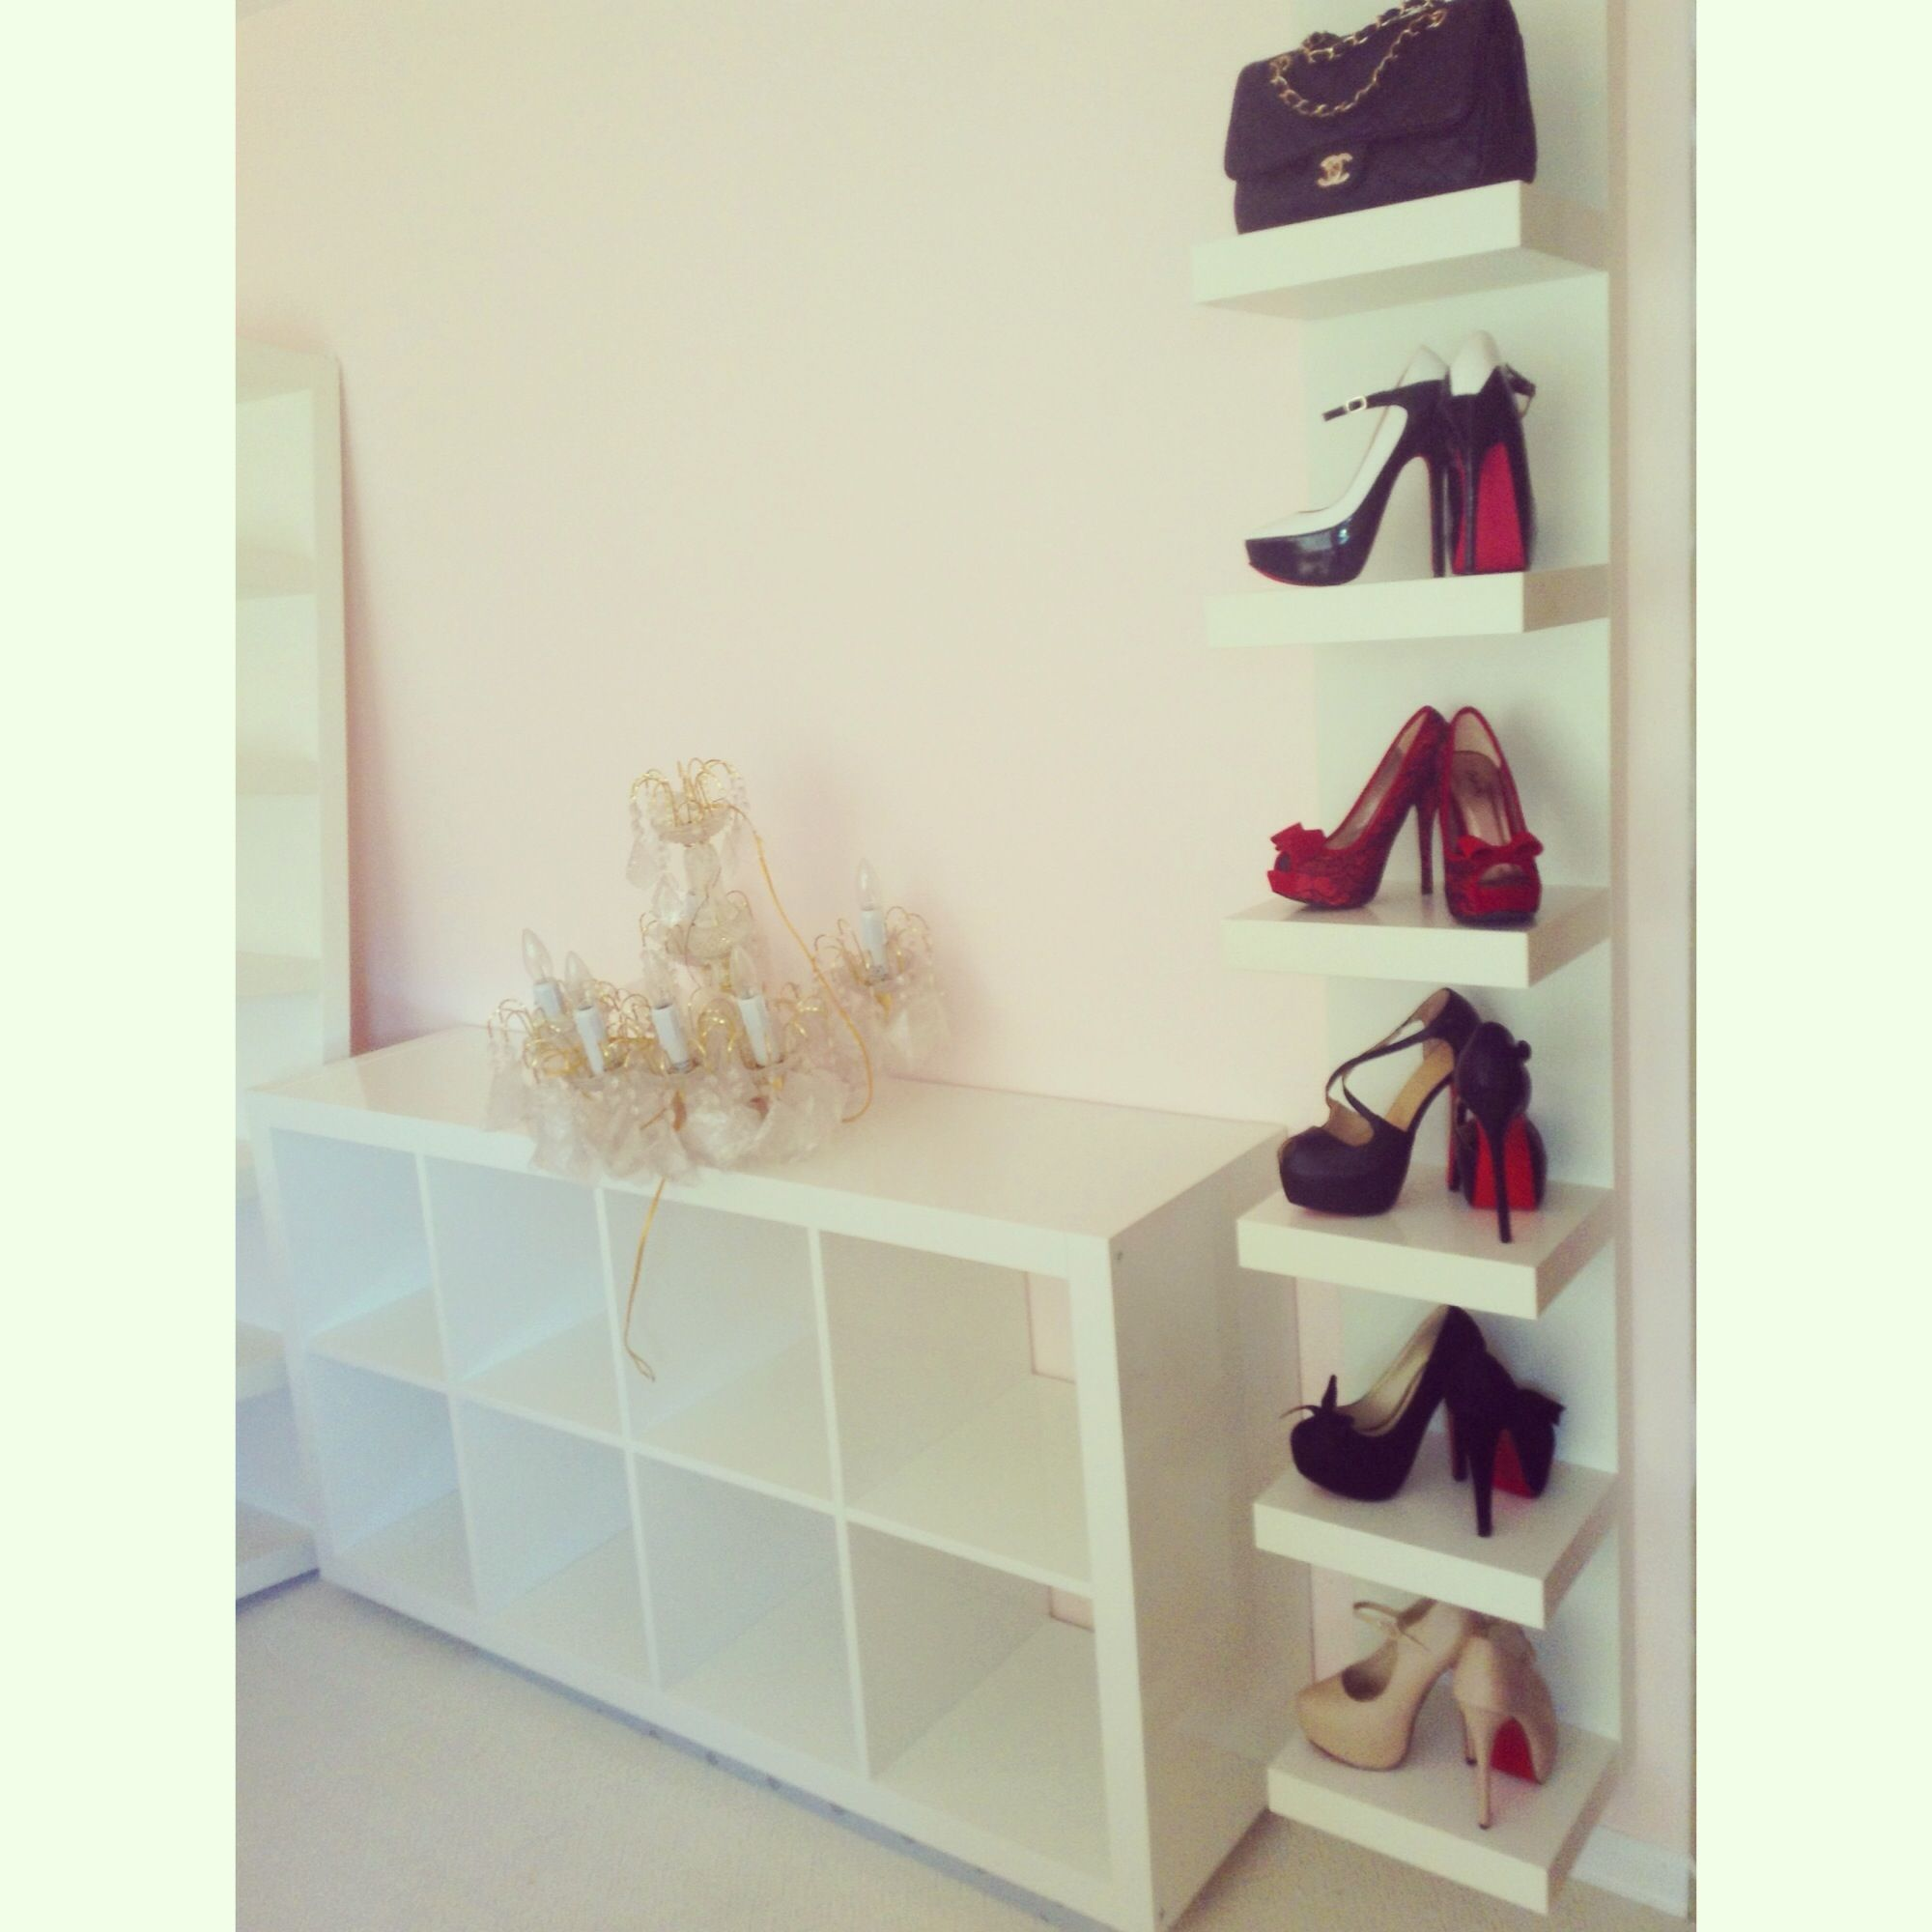 result for shoe wall shelves the college board ikea lack white floating shoes secret gun storage furniture shelf ideas office desk diy command shower hooks fold small pine curtain